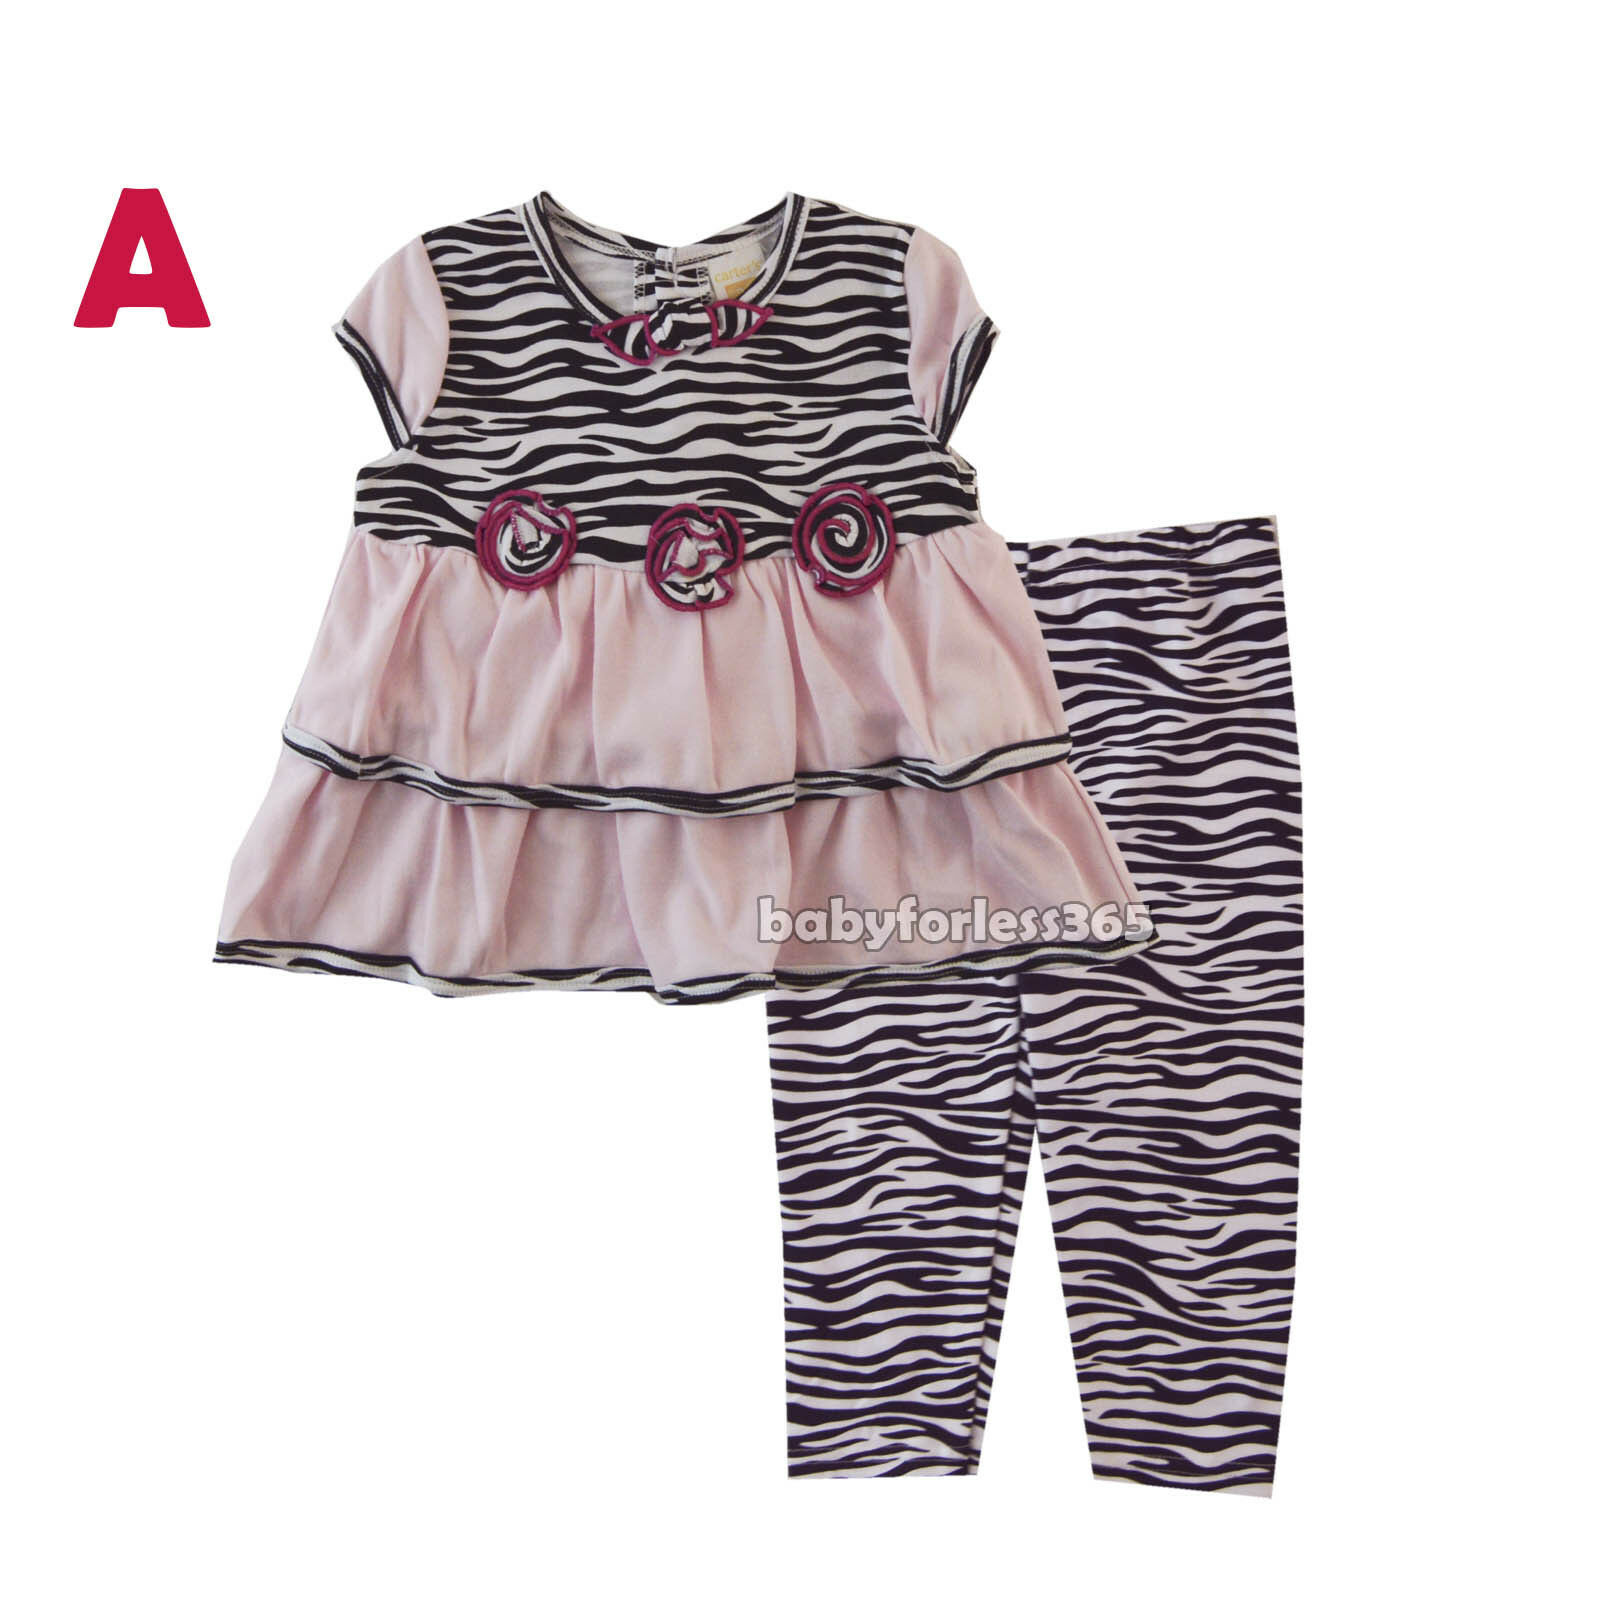 83239109cb8f New Carter's Baby Girls Outfit Clothes 2 pcs top legging 3 6 9 12 18 24  months